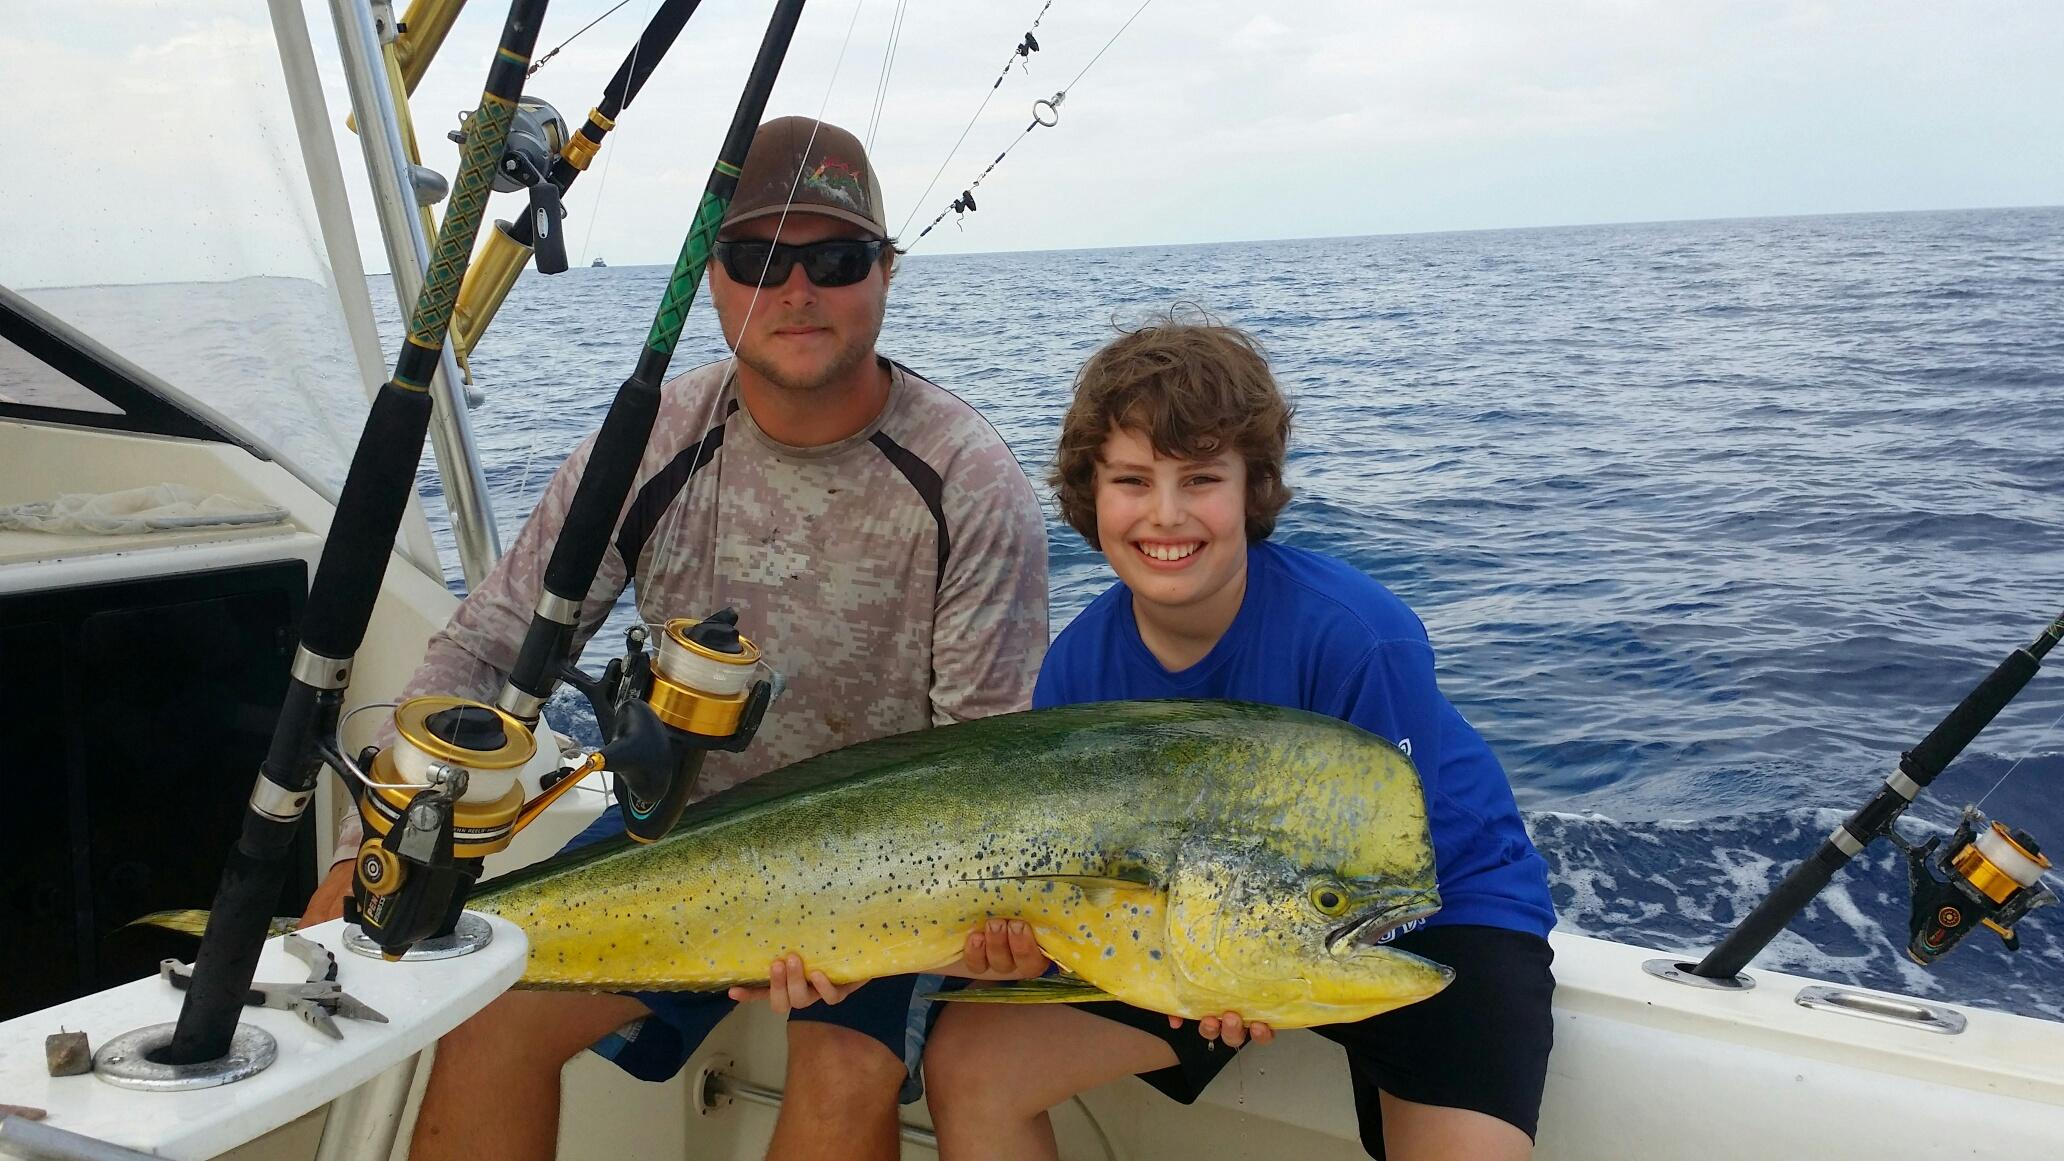 Fishing charters key largo the fin chaser key largo for Key largo fishing charters